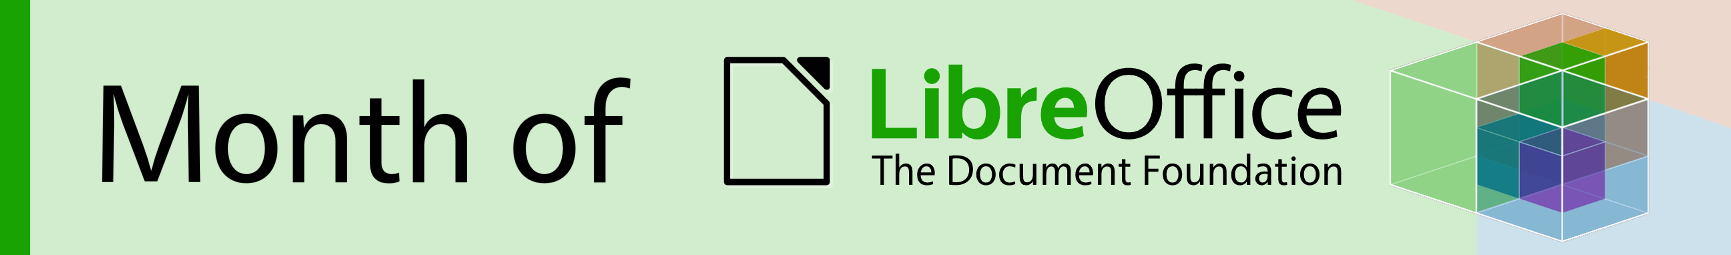 It's the final week of the Month of LibreOffice, November 2018